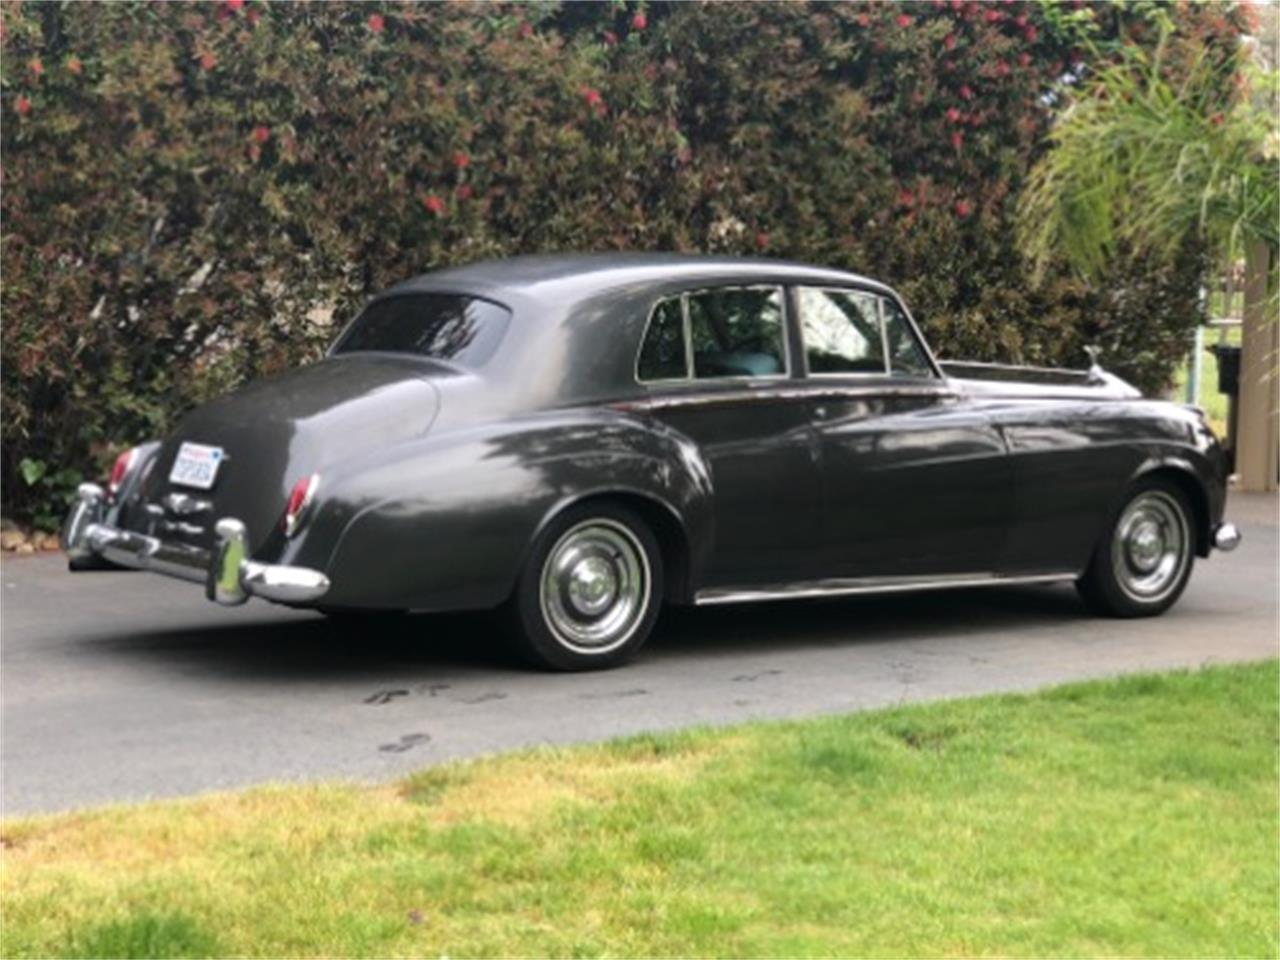 Large Picture of Classic '62 Rolls-Royce Silver Cloud II located in New York - $36,500.00 Offered by Gullwing Motor Cars - NDW6